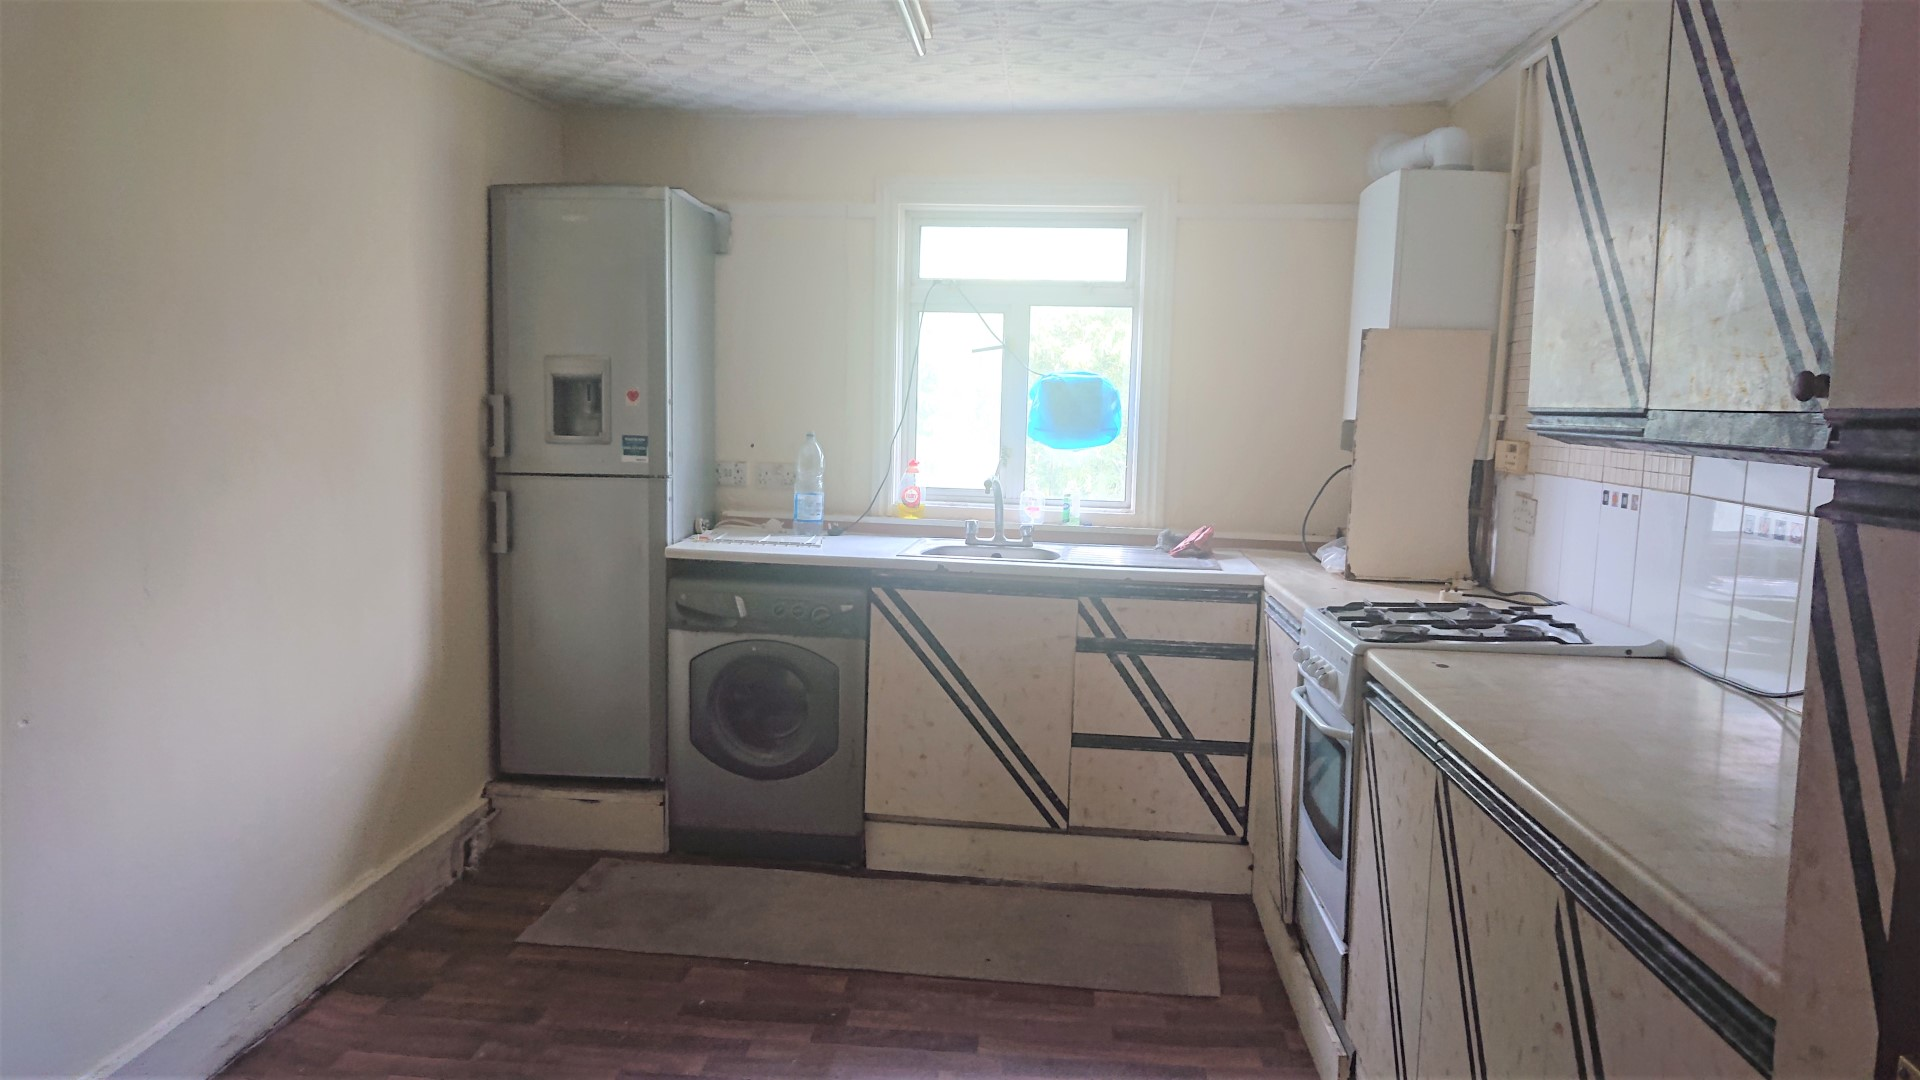 3 bed Flat for rent in Croydon. From Stacie Templeton Estate Agents - London